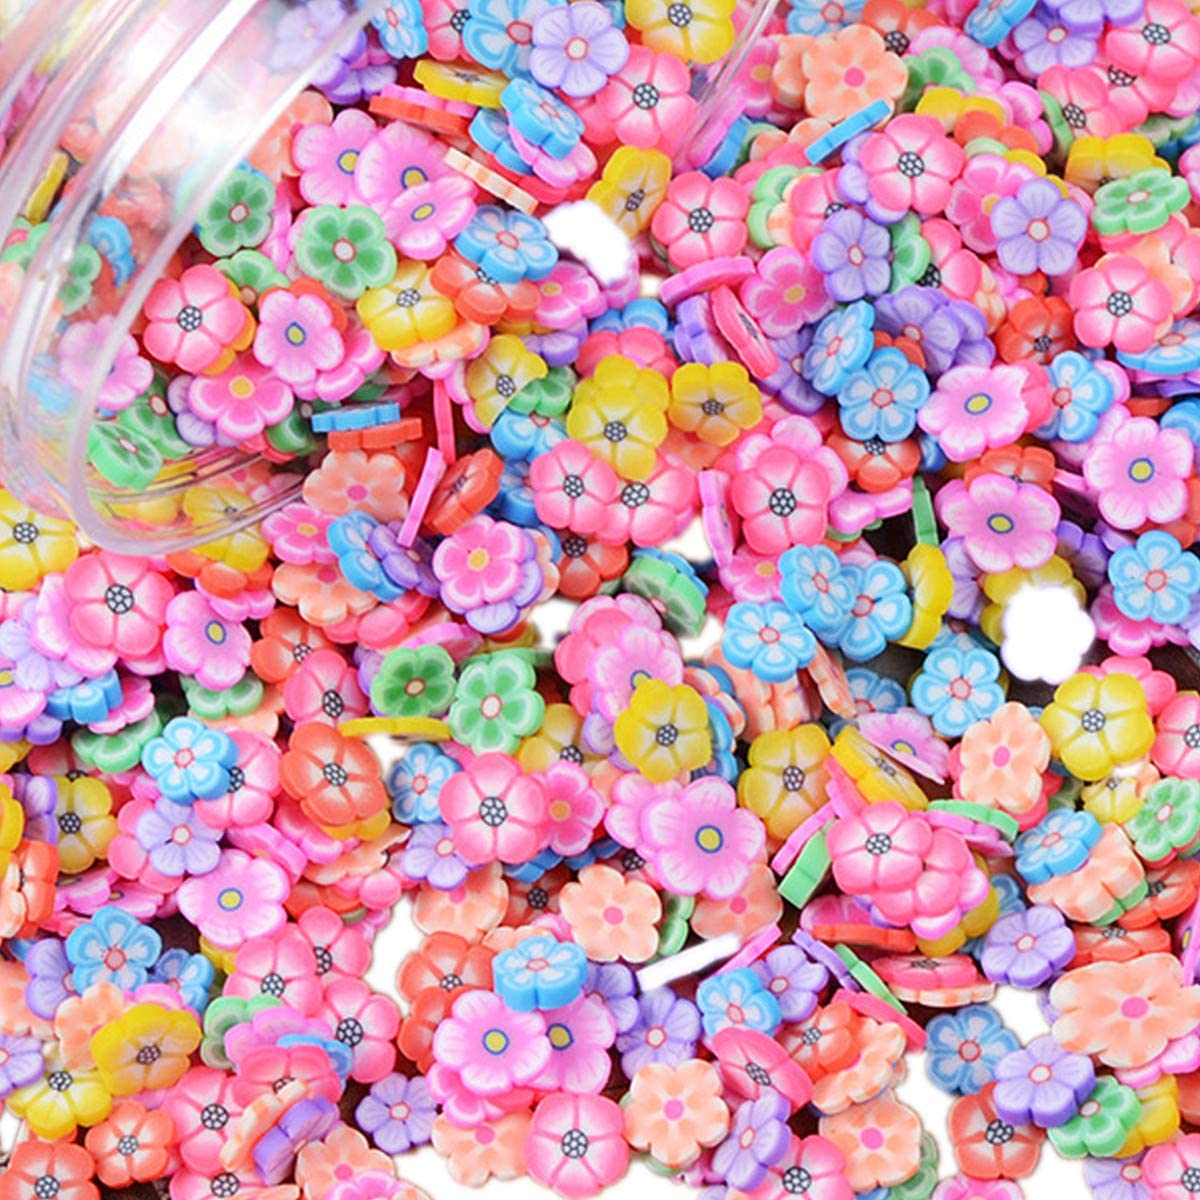 100 Pack Fruit Slime Charms Resin Flatbacks Buttons Polymer Clay Beads for Miniature Fairy Garden Hair Accessories DIY Scrapbooking Phone Case Jewelry Making Home Decoration Dragon Fruit